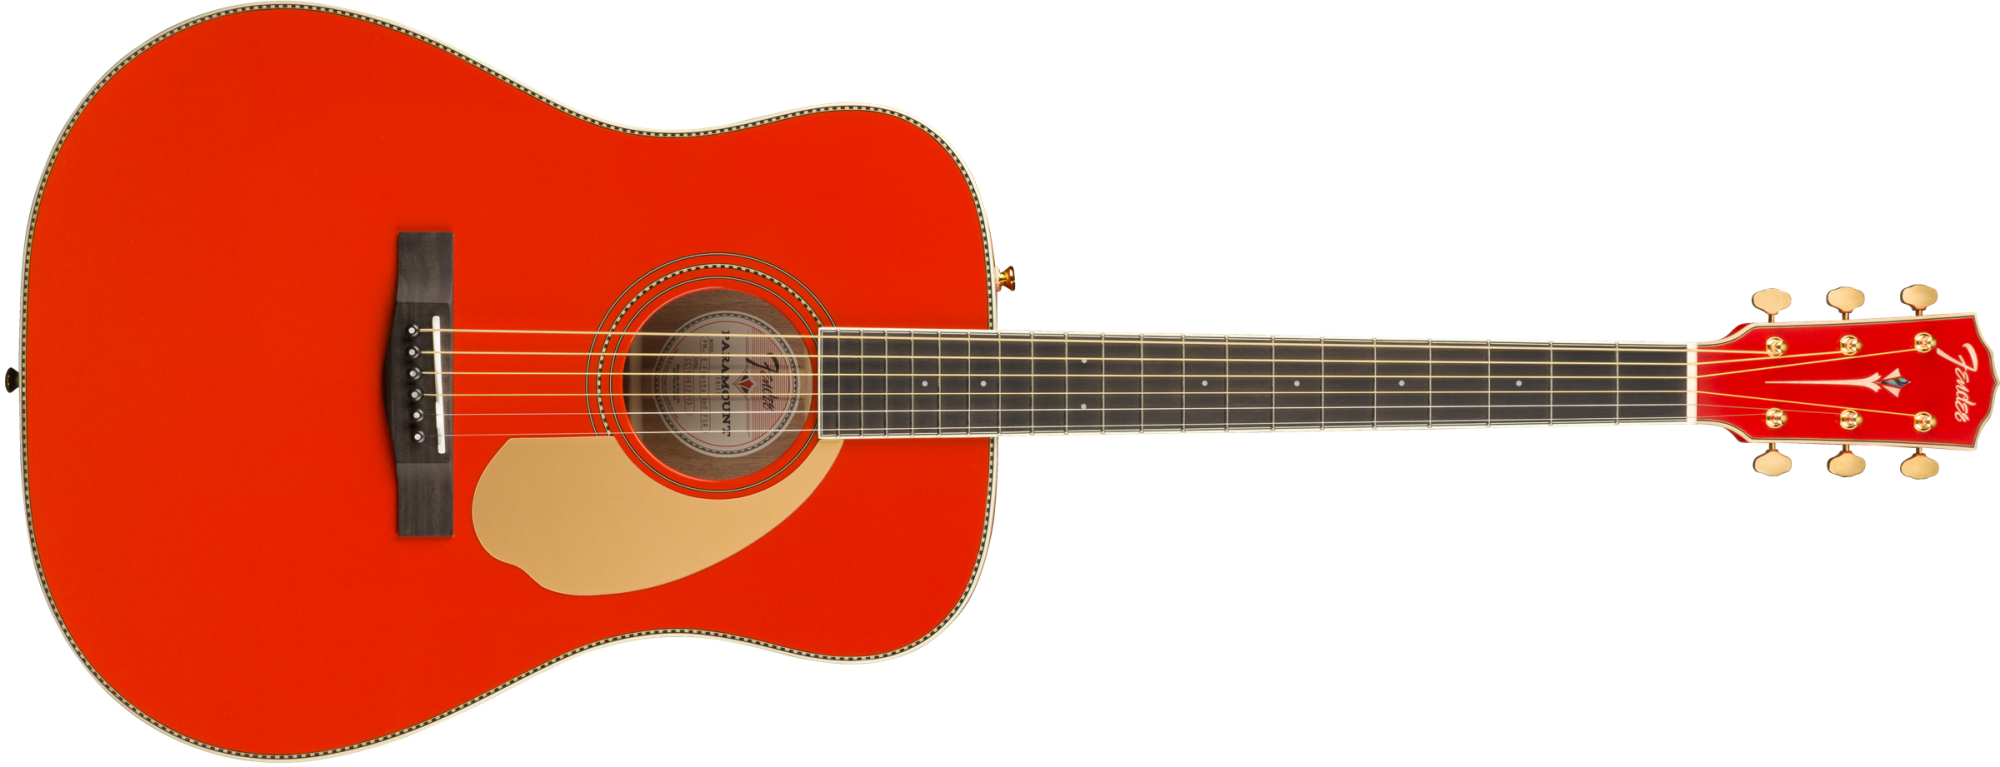 Fender PM-1 Deluxe Dreadnought with Case - Fiesta Red - Limited Edition